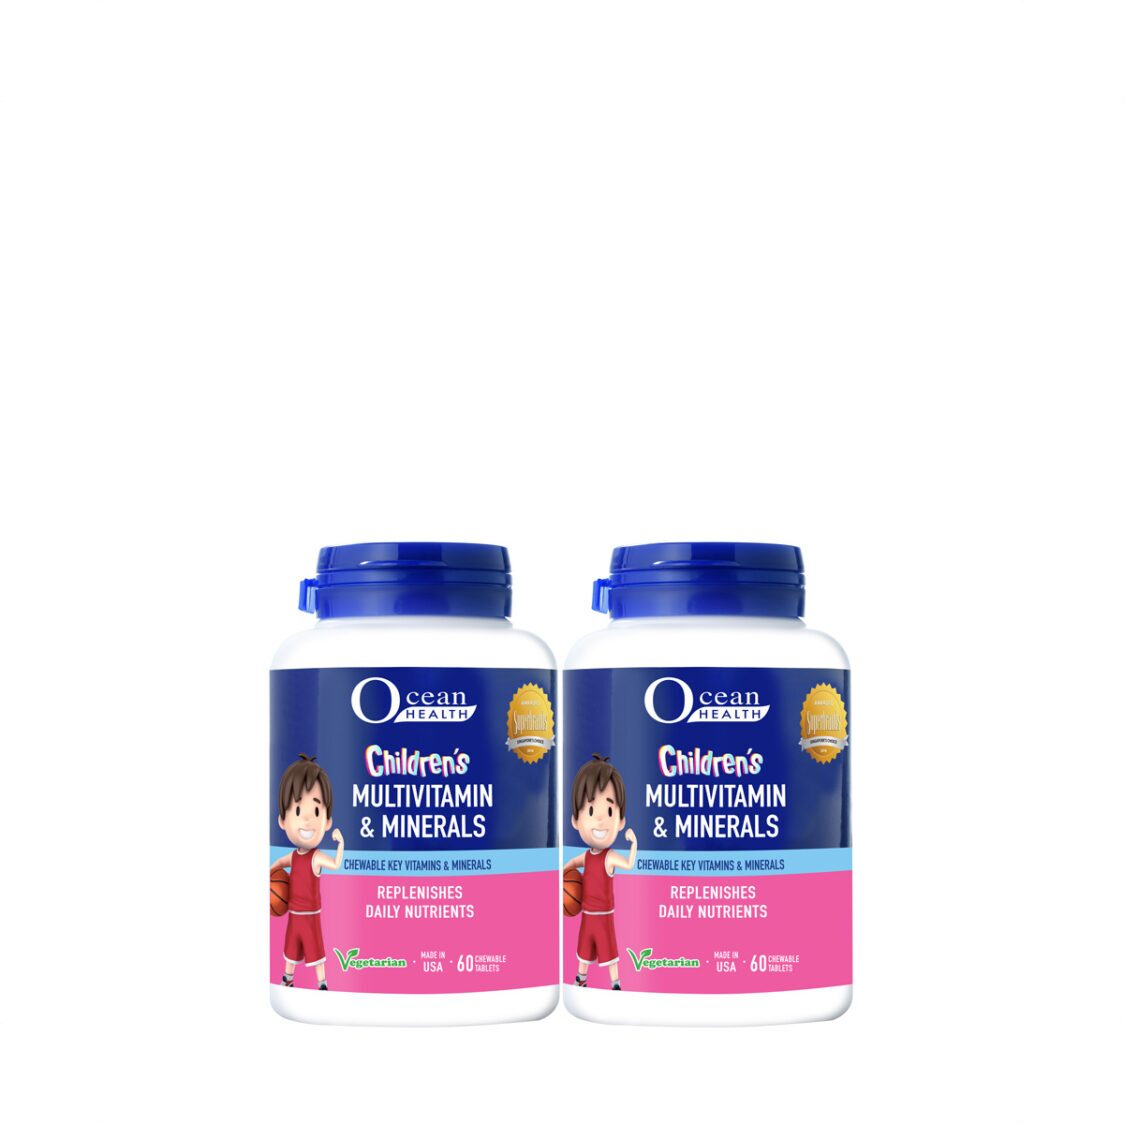 Child Multivitamin Chew Tab 2x60s